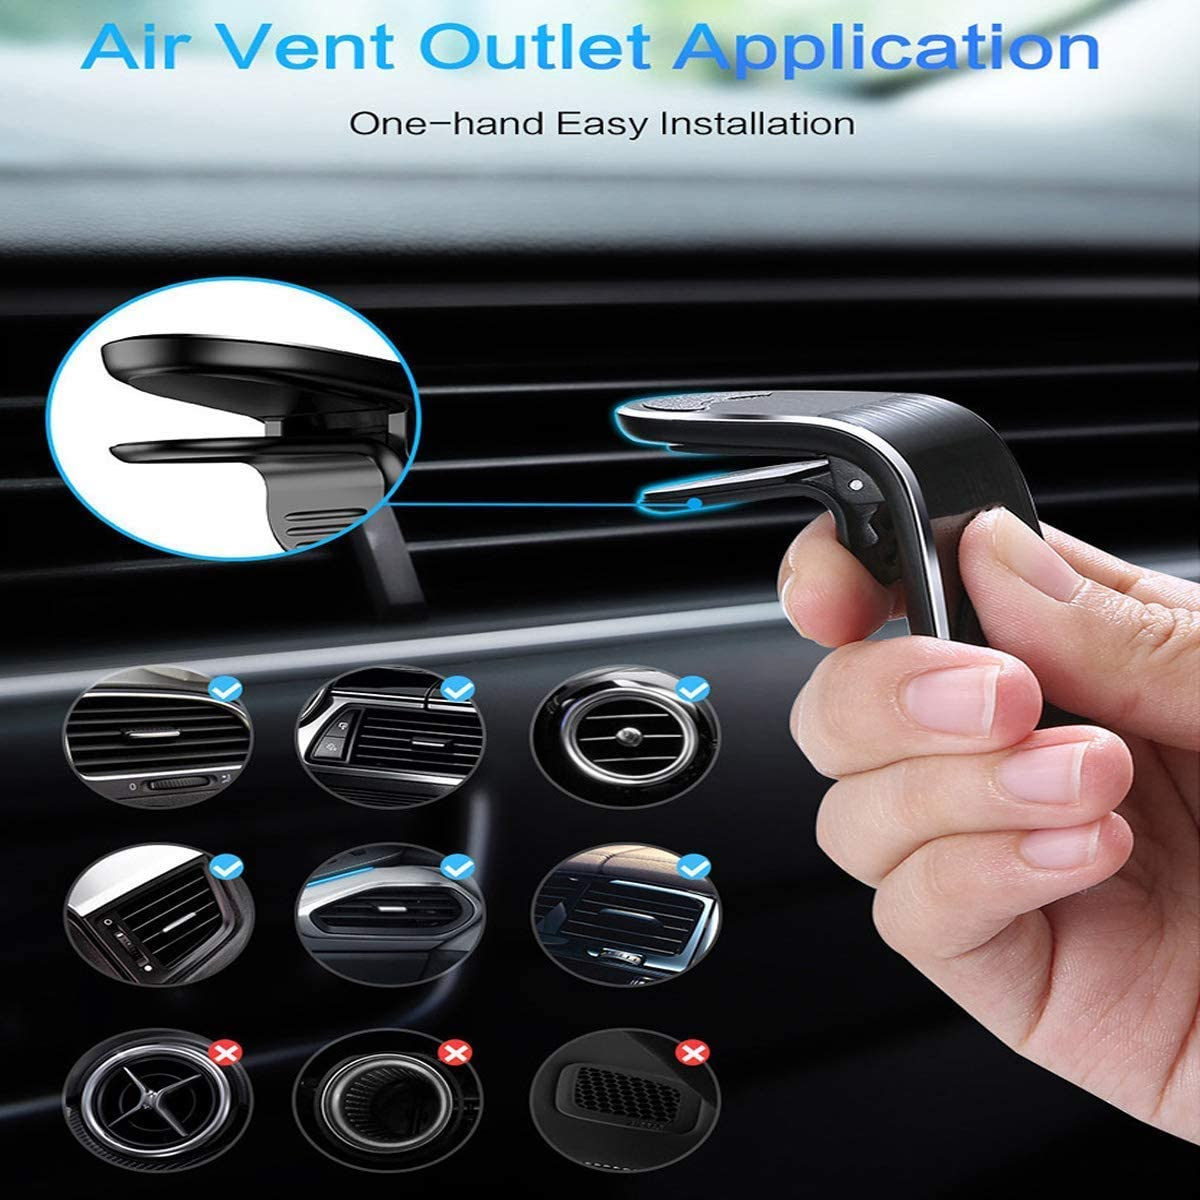 X Universal Air Vent Phone Holder Fits iPhone 11 Black /& Silver Samsung Galaxy /& Other Smartphones TT/&C Magnetic Cell Phone Car Mount 8 6Plus XR 7S